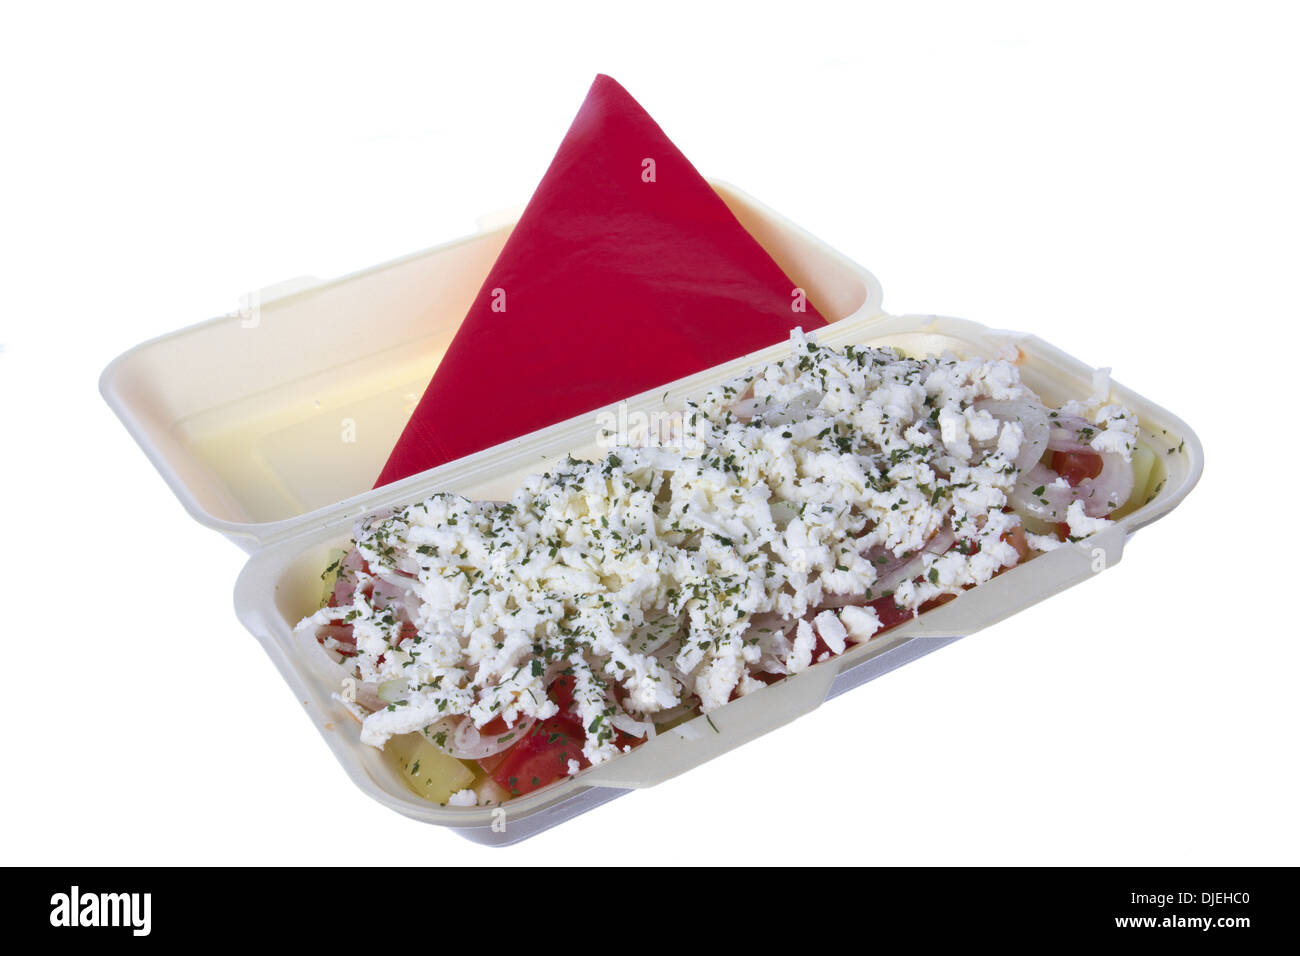 salad to go with cheese, tomato, pepper and parsley - Stock Image